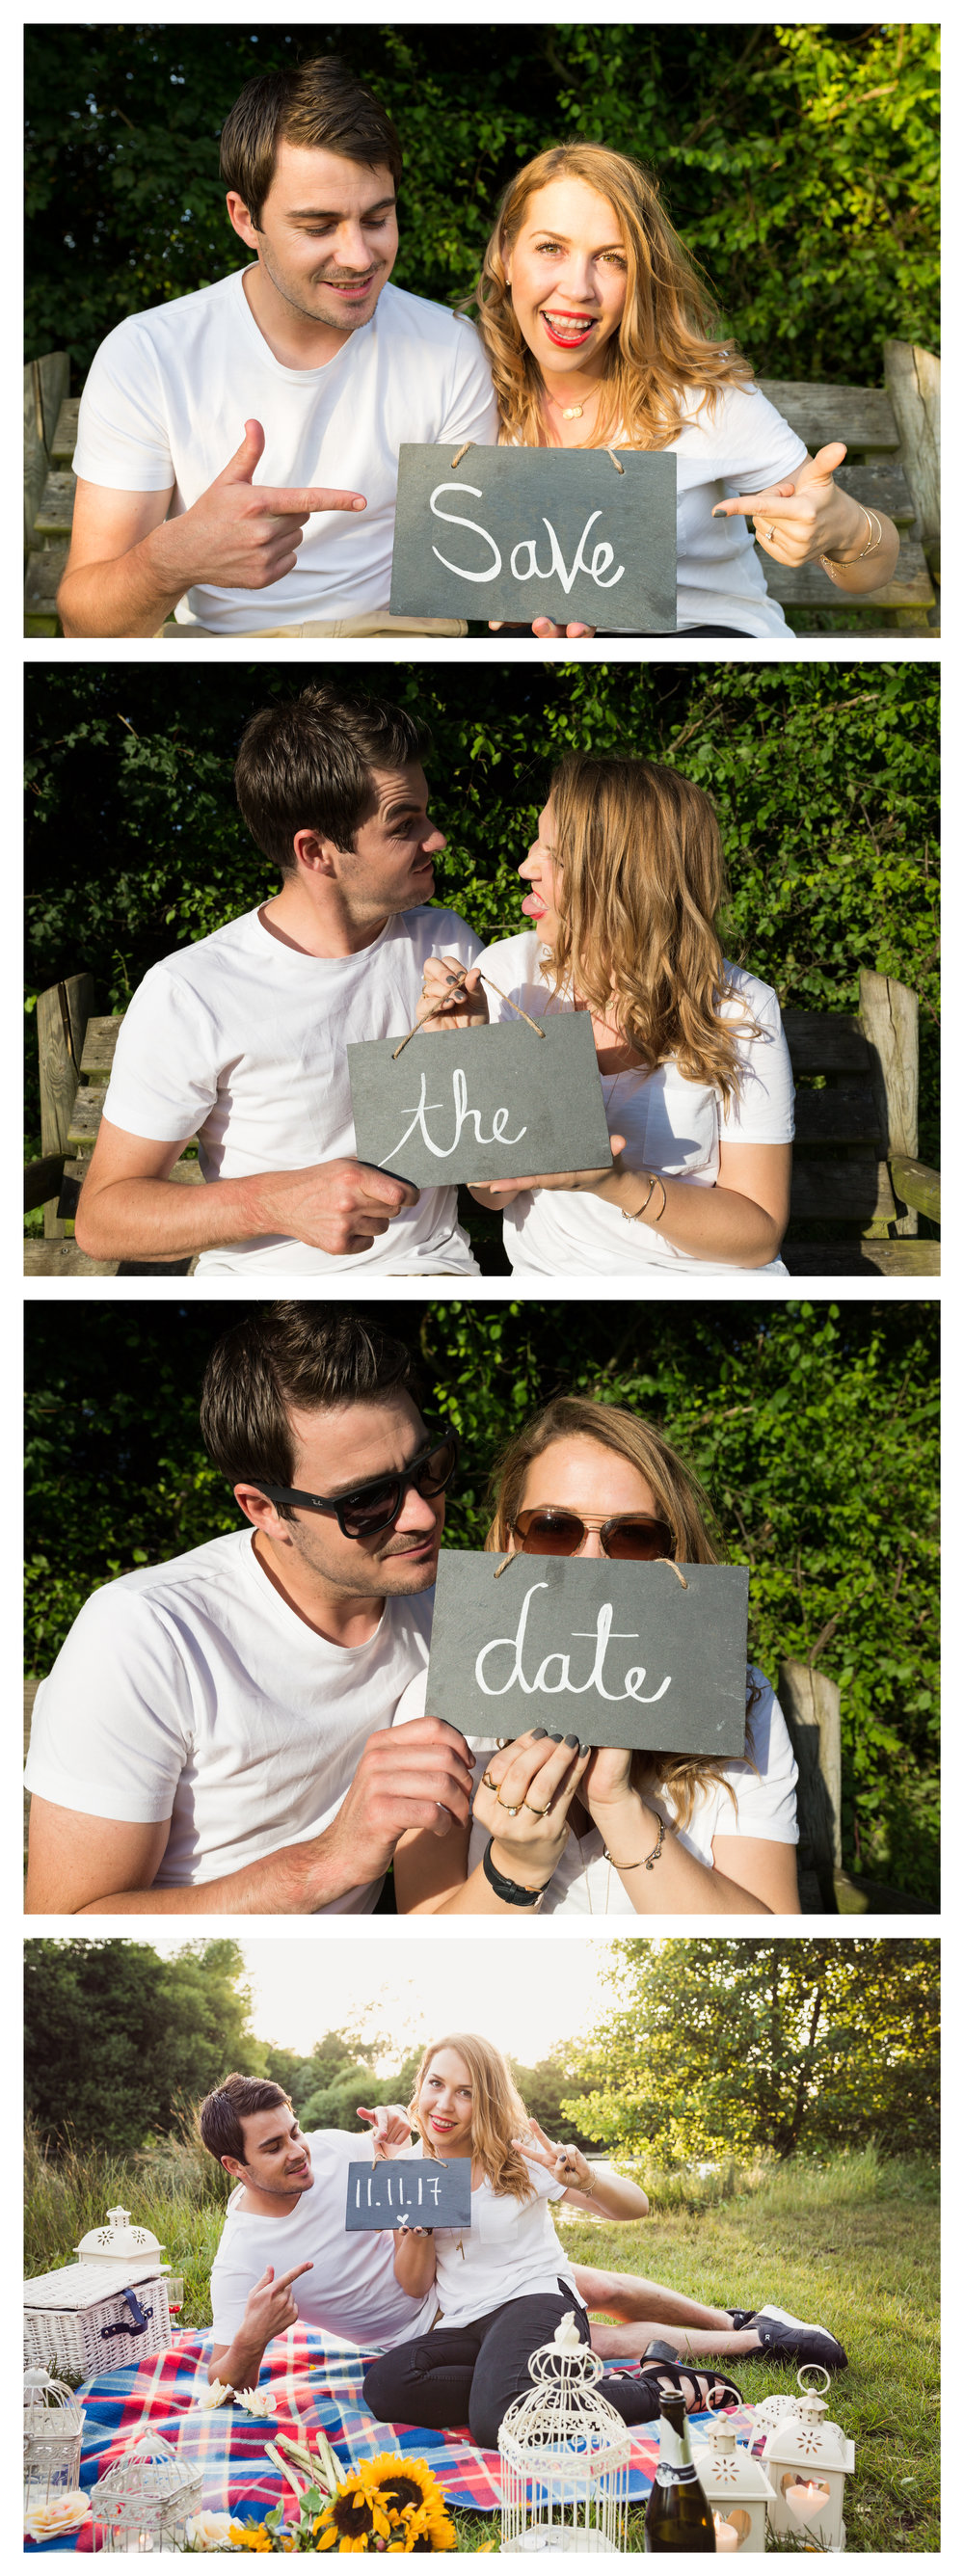 Save the Date Image of Lacey & Dan Harris' Engagement Photoshoot in Heybridge, Maldon